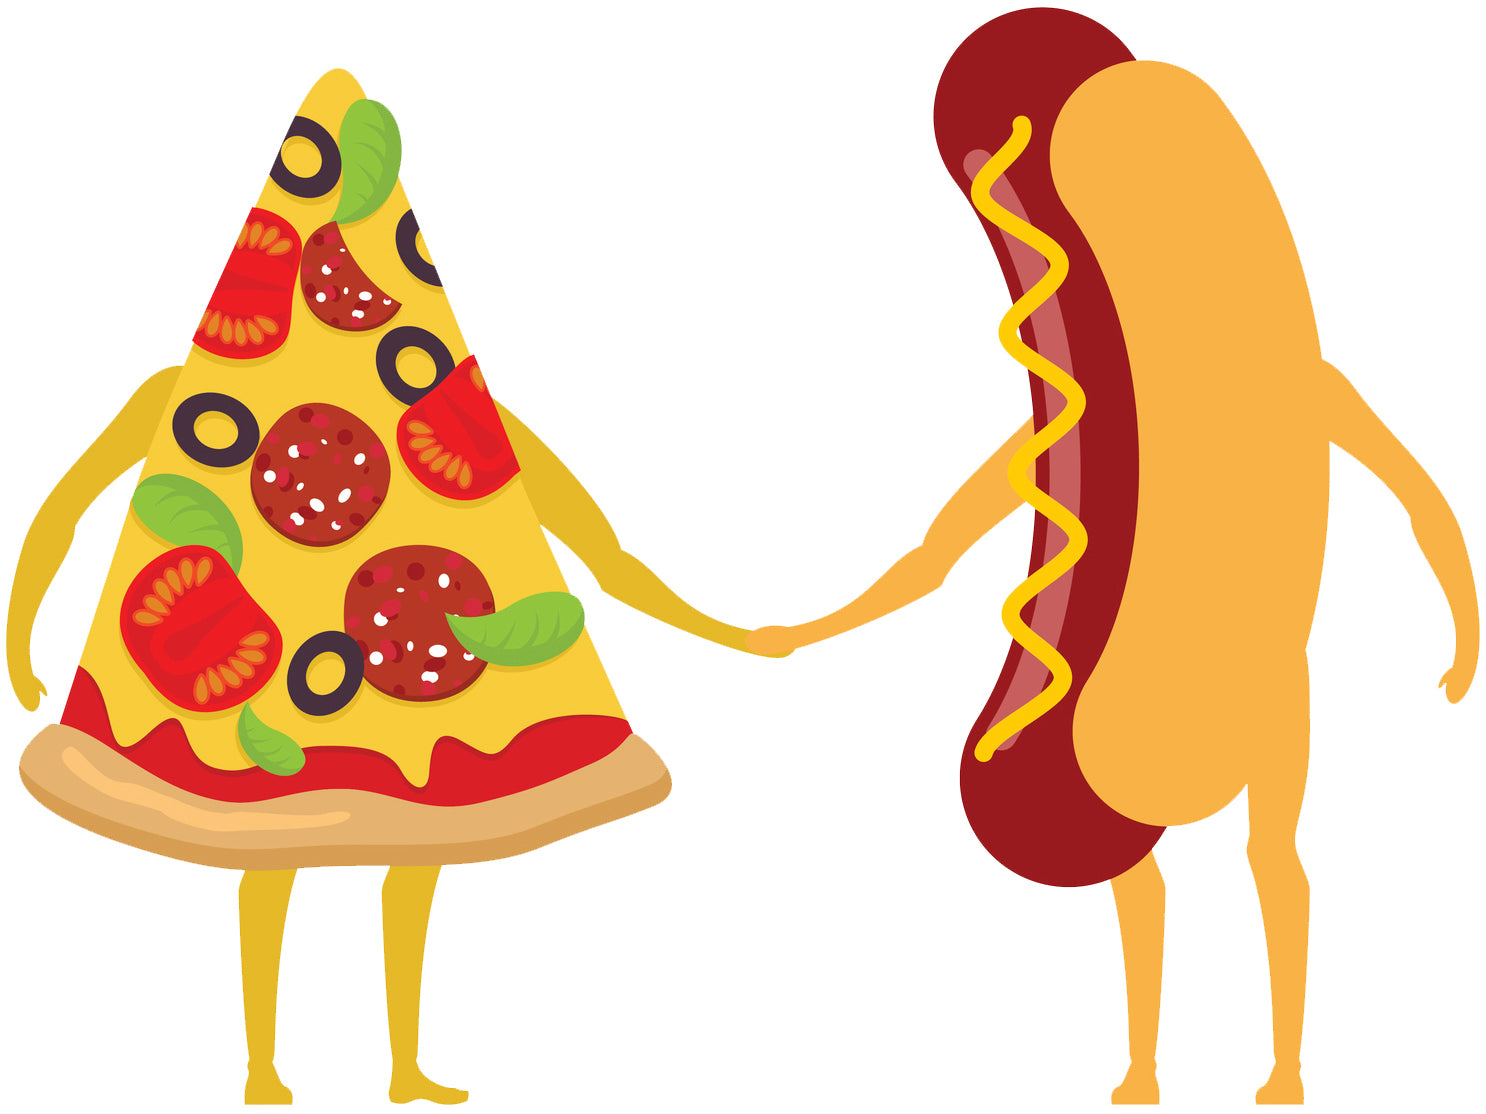 Happy Pizza Hotdog Fast Food Cartoon Couple Vinyl Decal Sticker